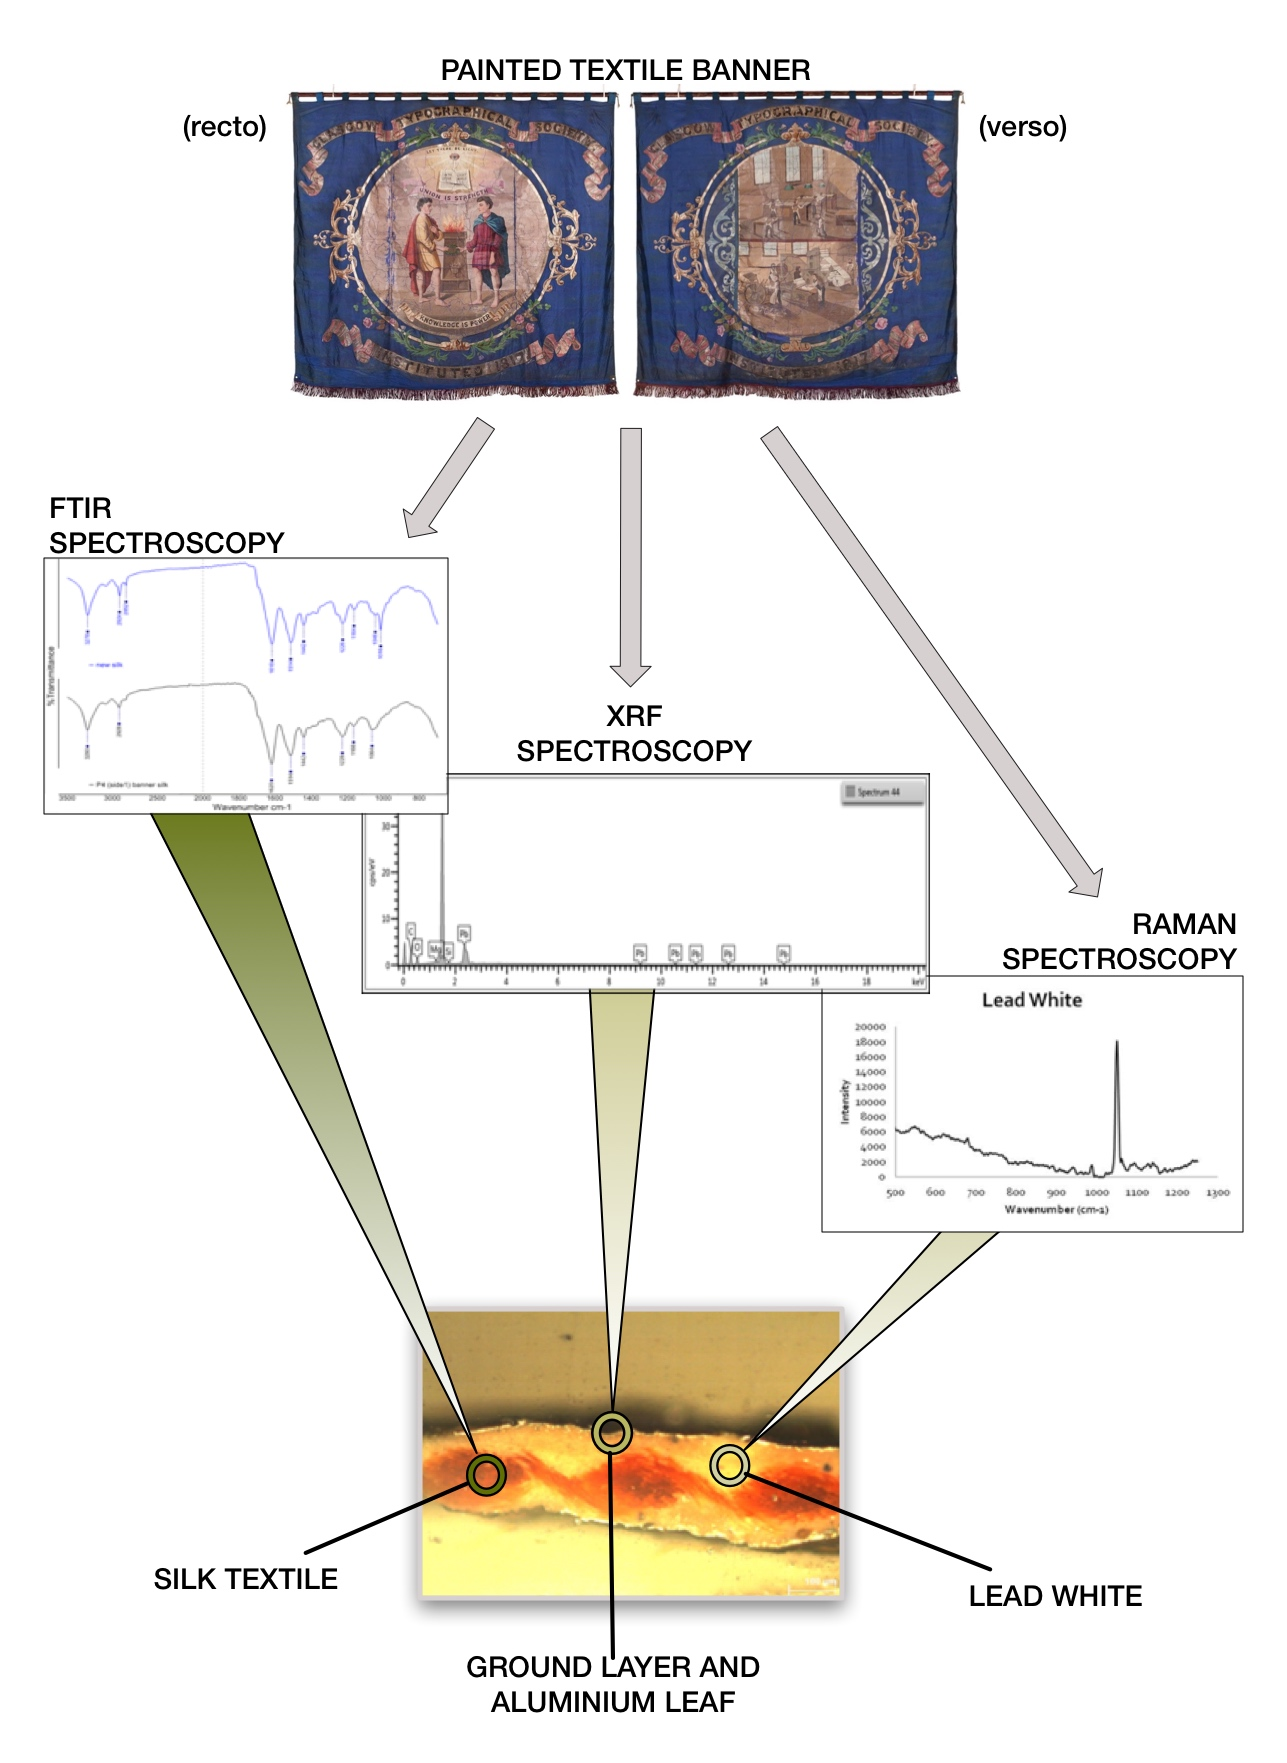 Schematic diagram illustrating the results of analysing a sample taken from a painted textile banner using FTIR, XRF and Raman spectroscopy